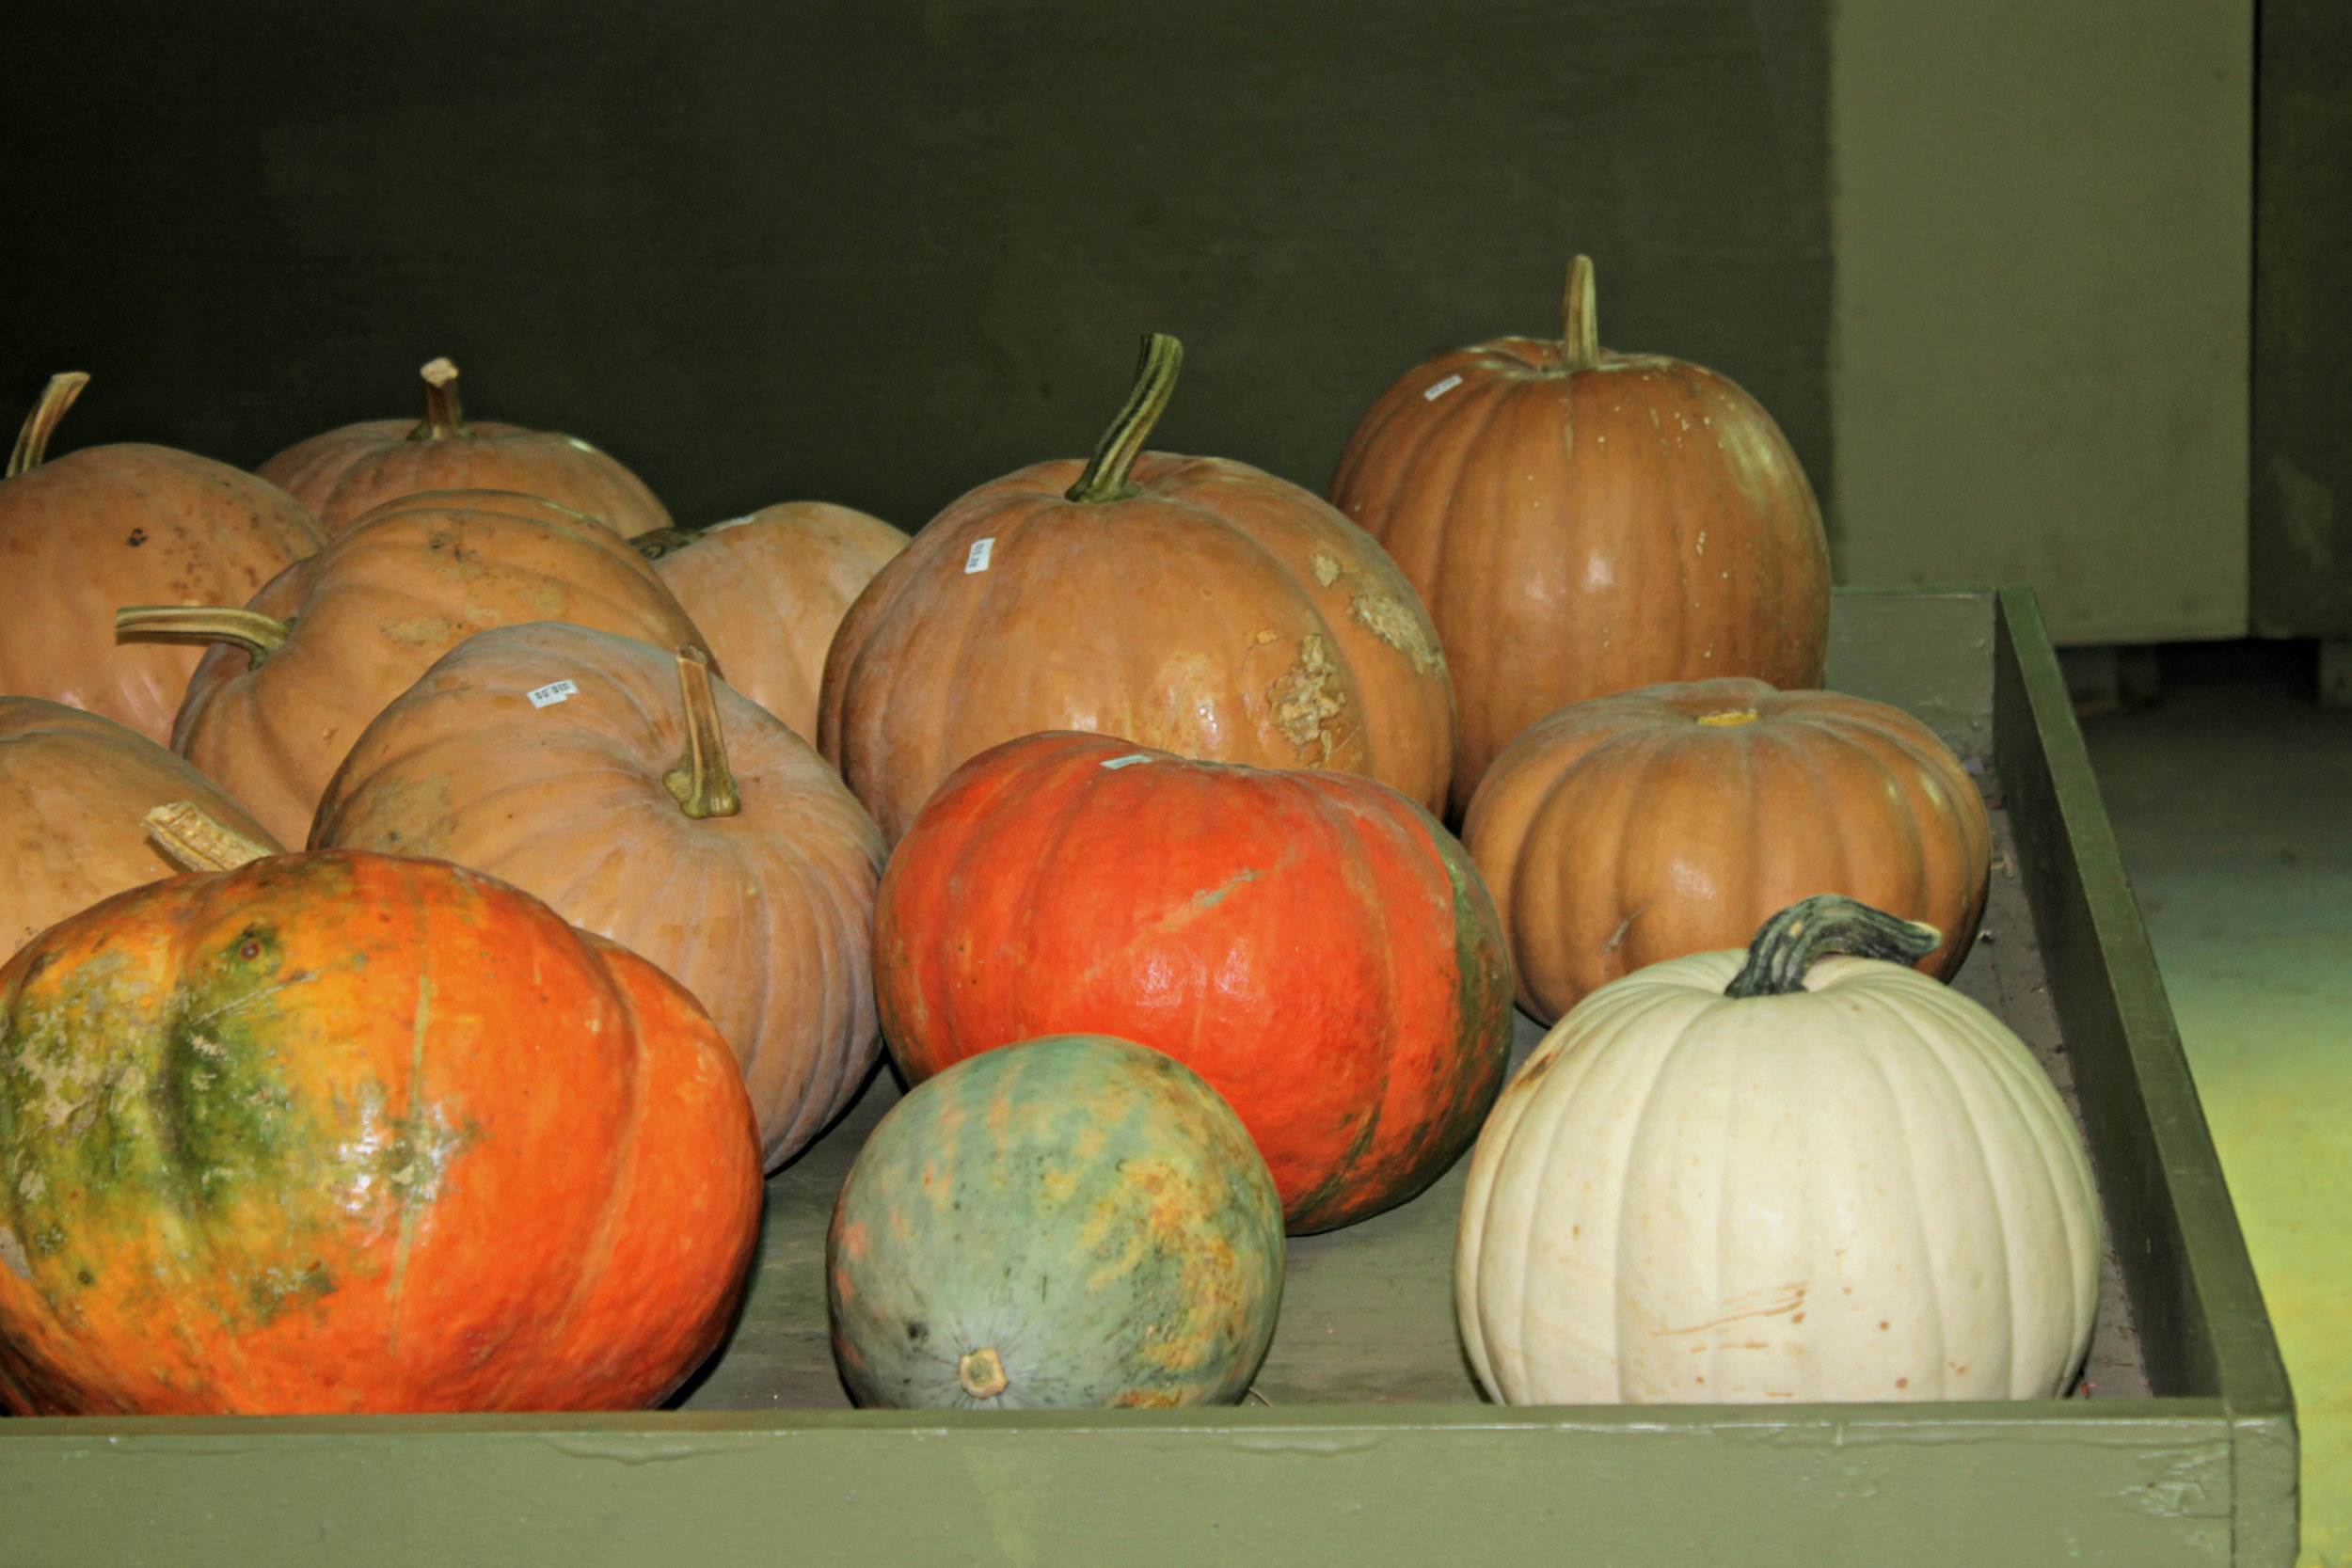 Along with pre-picked apples, pumpkins, gourds and other fall decorative vegetables are sold in the Sky Top market for great prices and multiple options for anyone to enjoy.